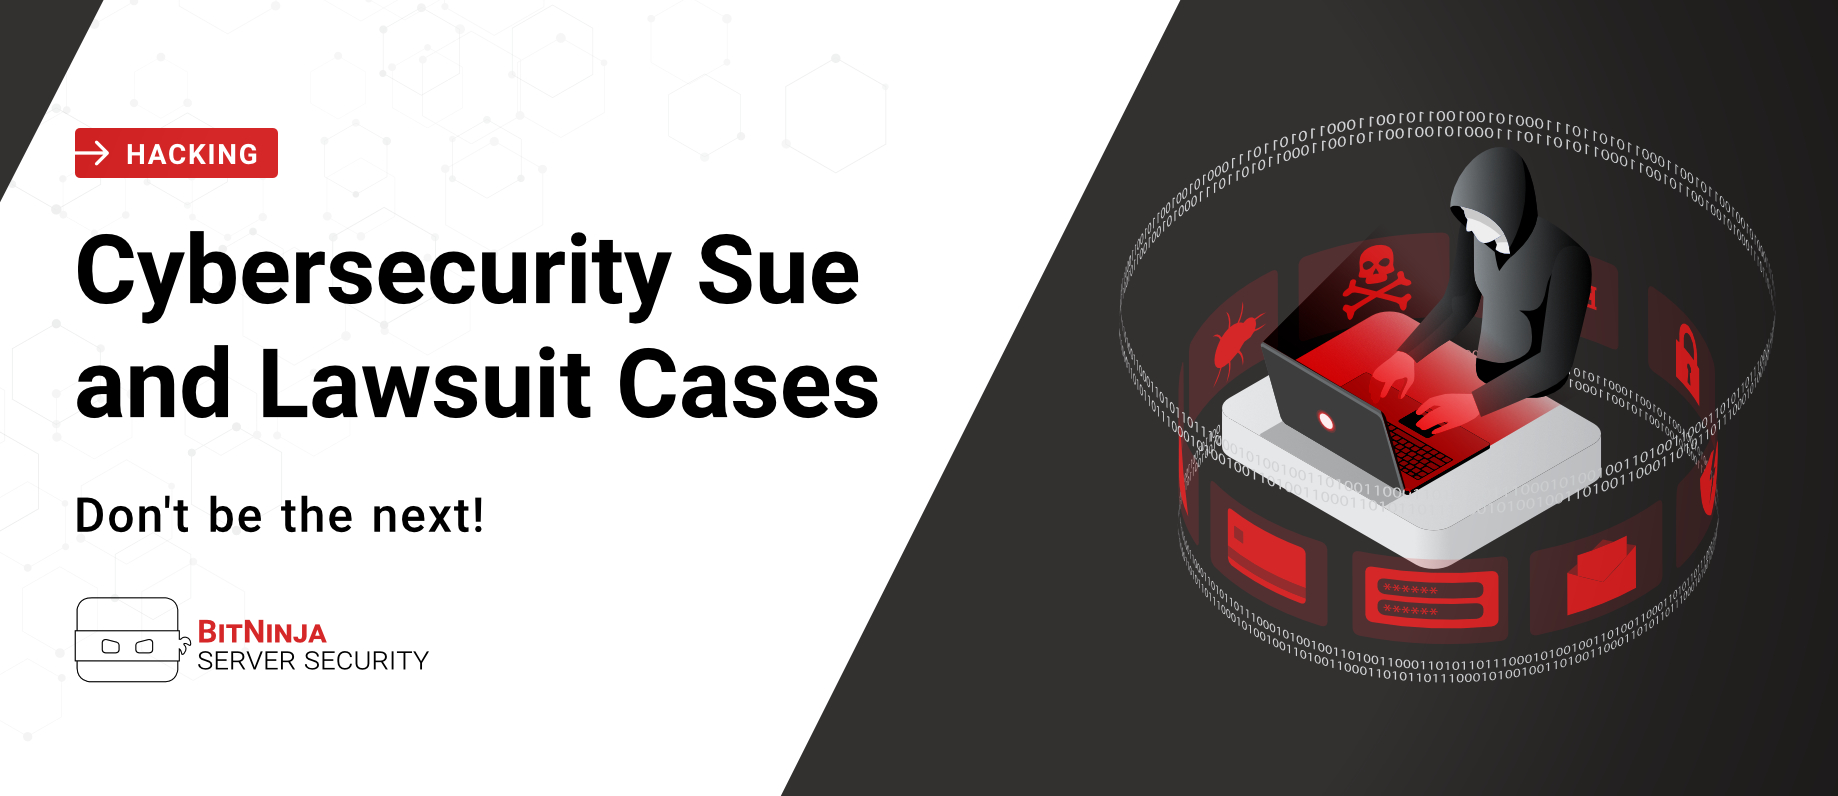 Don't be the next! - Cybersecurity Sue and Lawsuit Cases